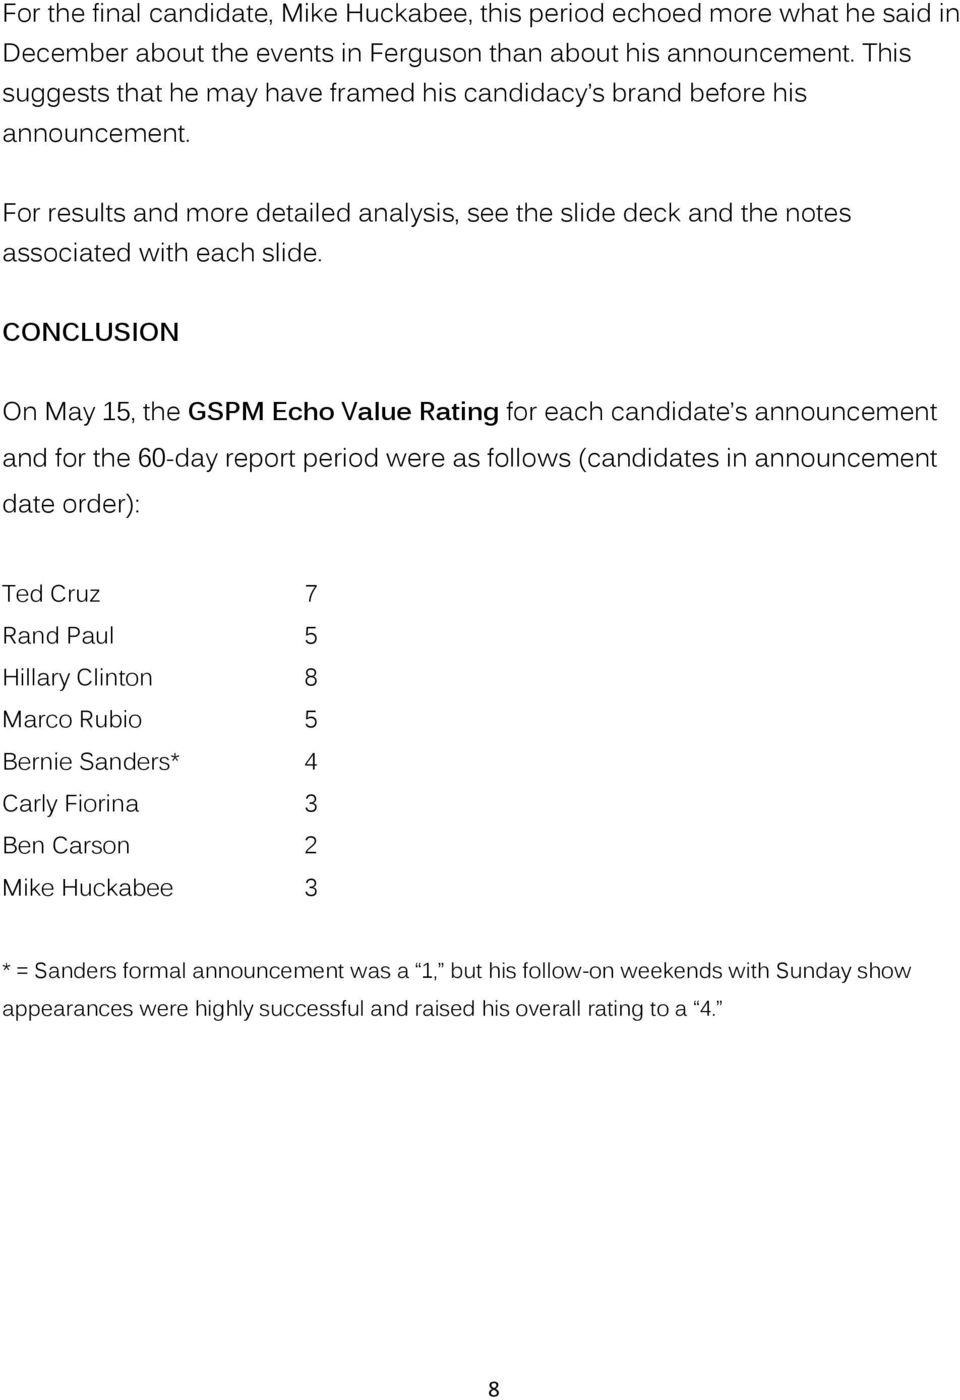 CONCLUSION On May 15, the GSPM Echo Value Rating for each candidate s announcement and for the 60-day report period were as follows (candidates in announcement date order): Ted Cruz 7 Rand Paul 5